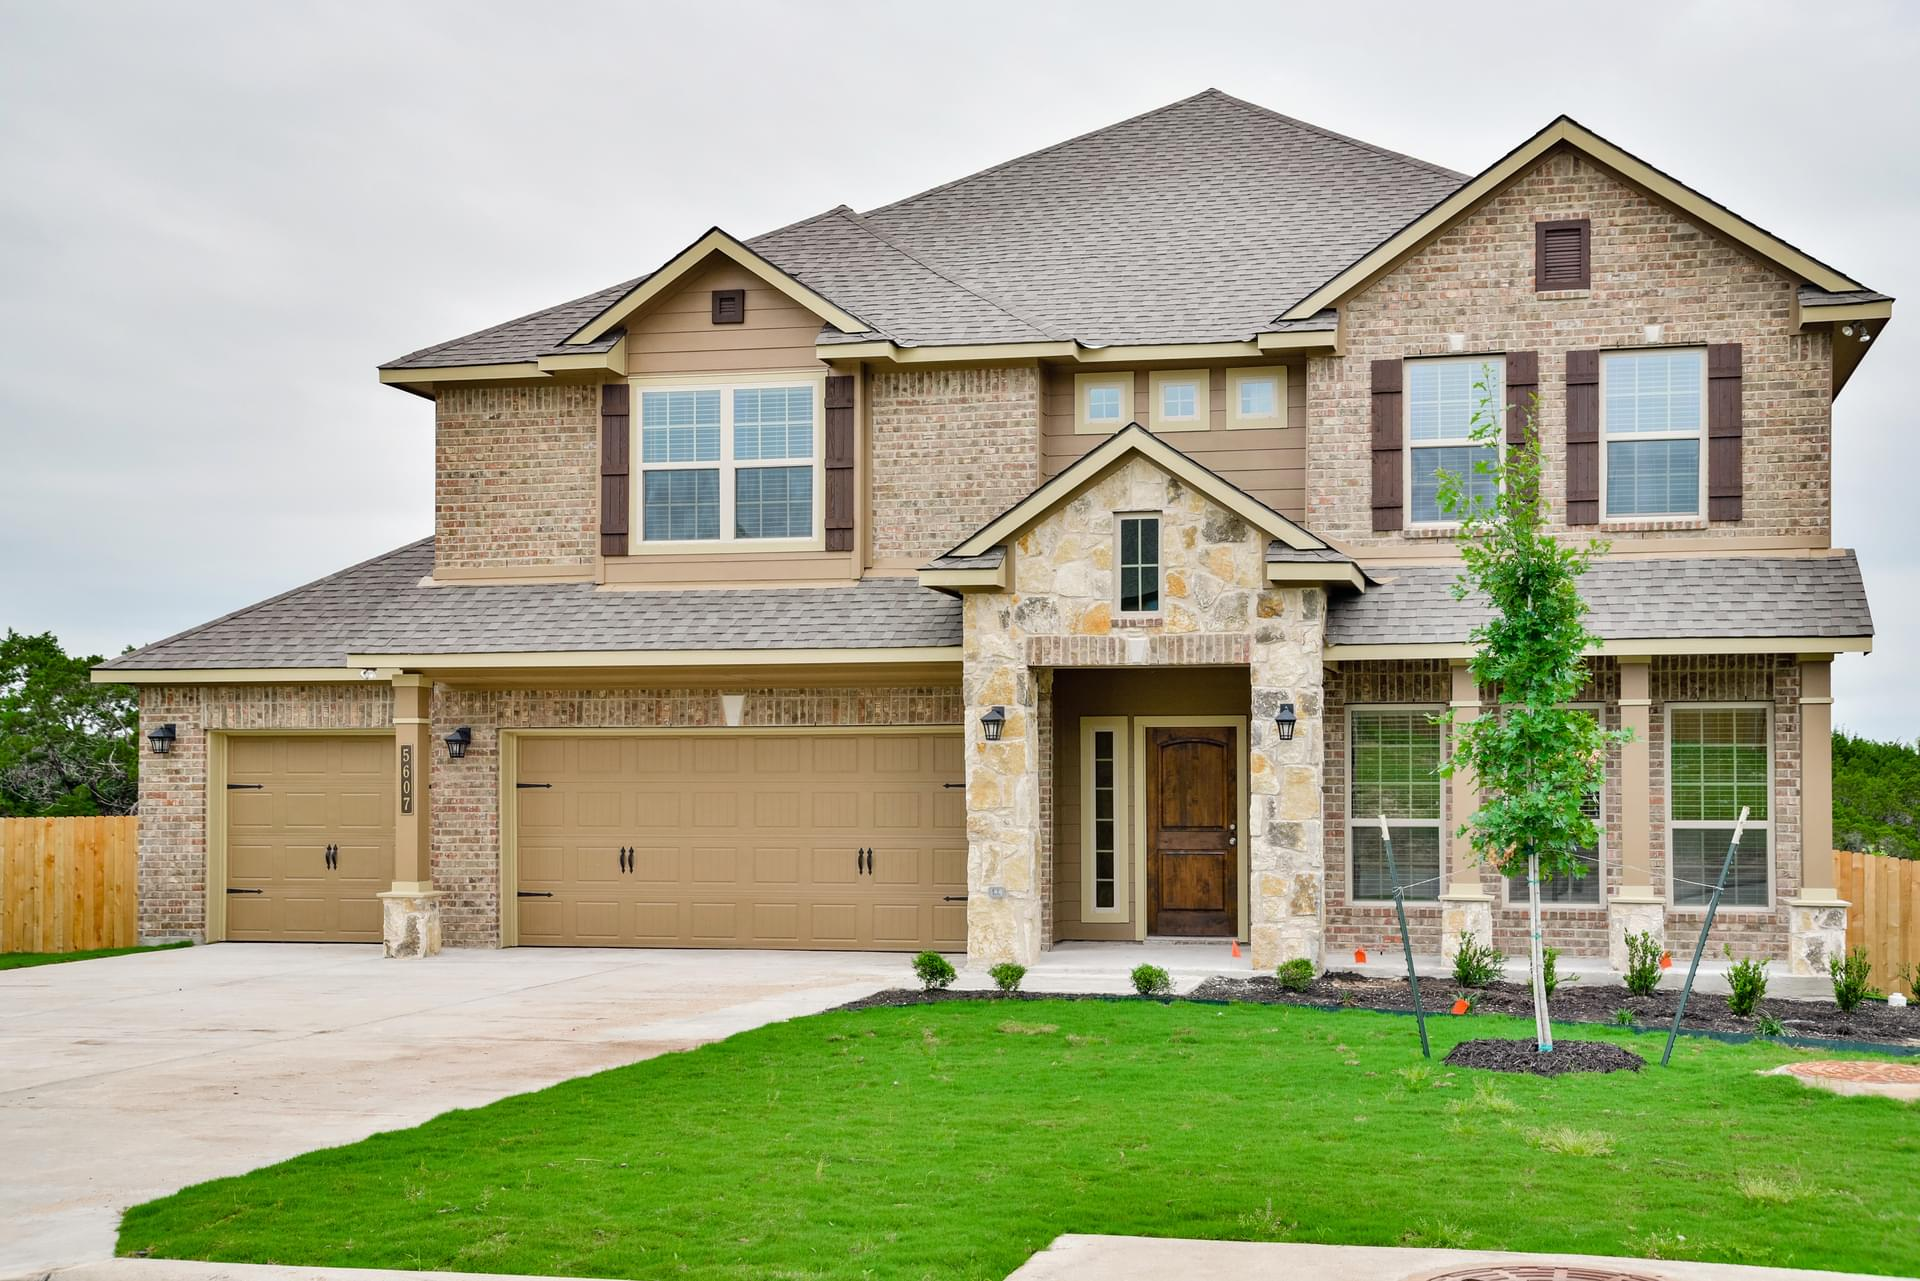 838 Ross Road in Copperas Cove, TX